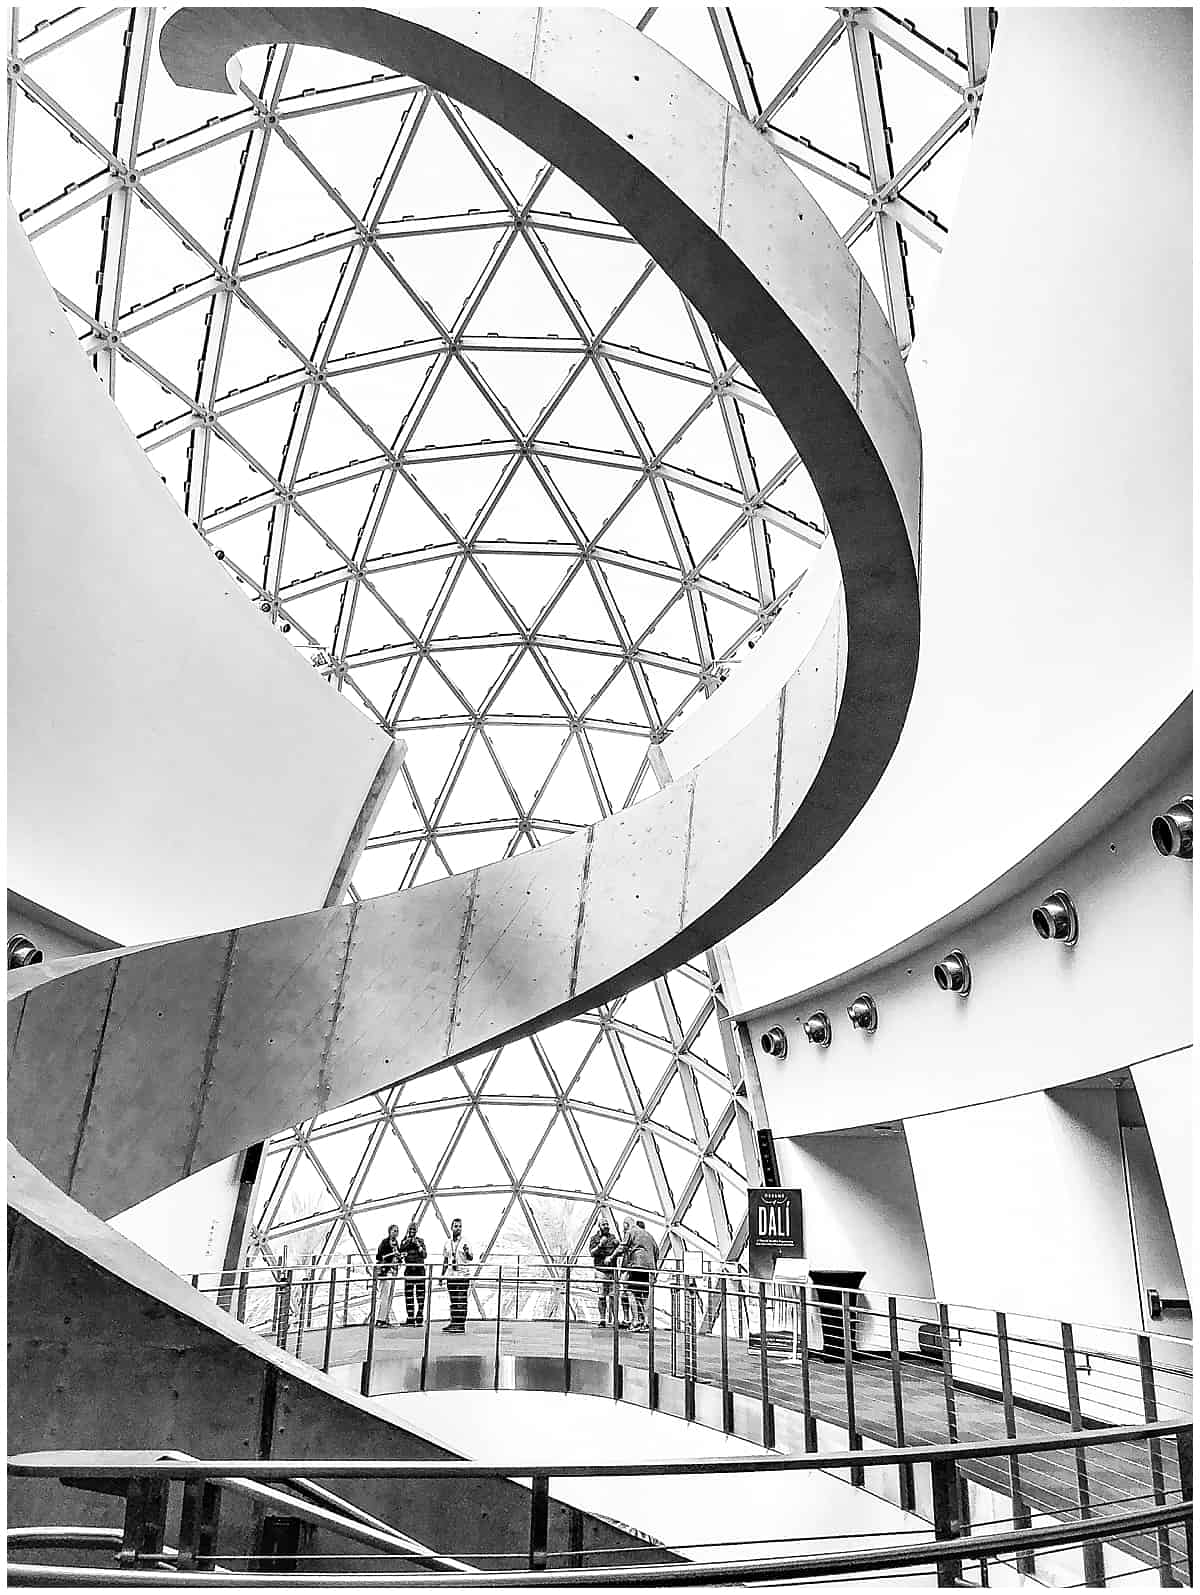 Inside the Dali Museum in Florida